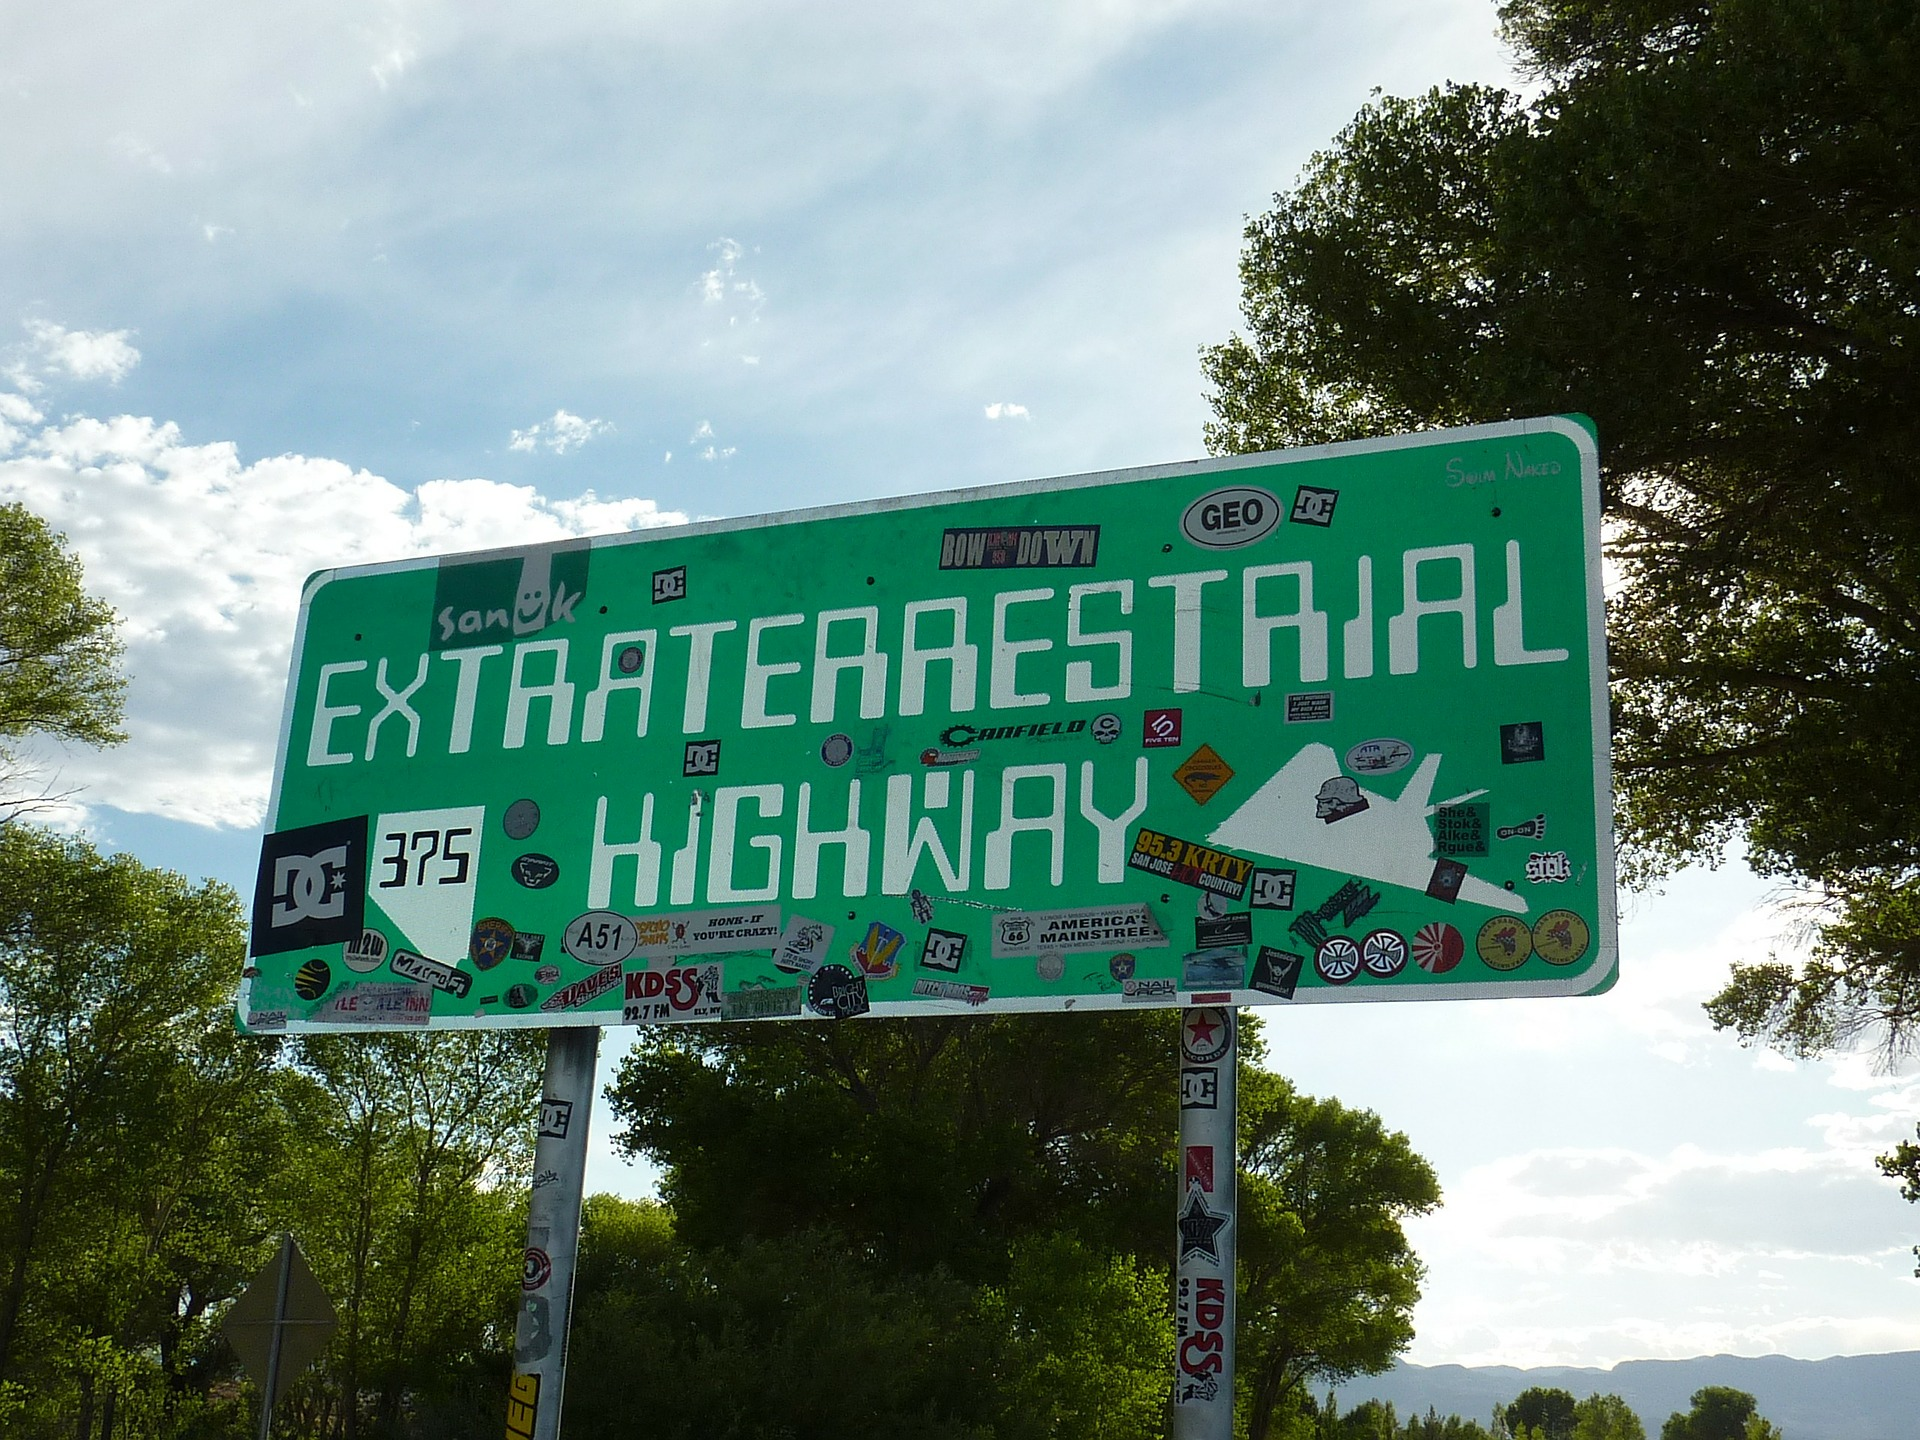 """Route 375 was dubbed the """"Extraterrestrial Highway"""" in 1996."""